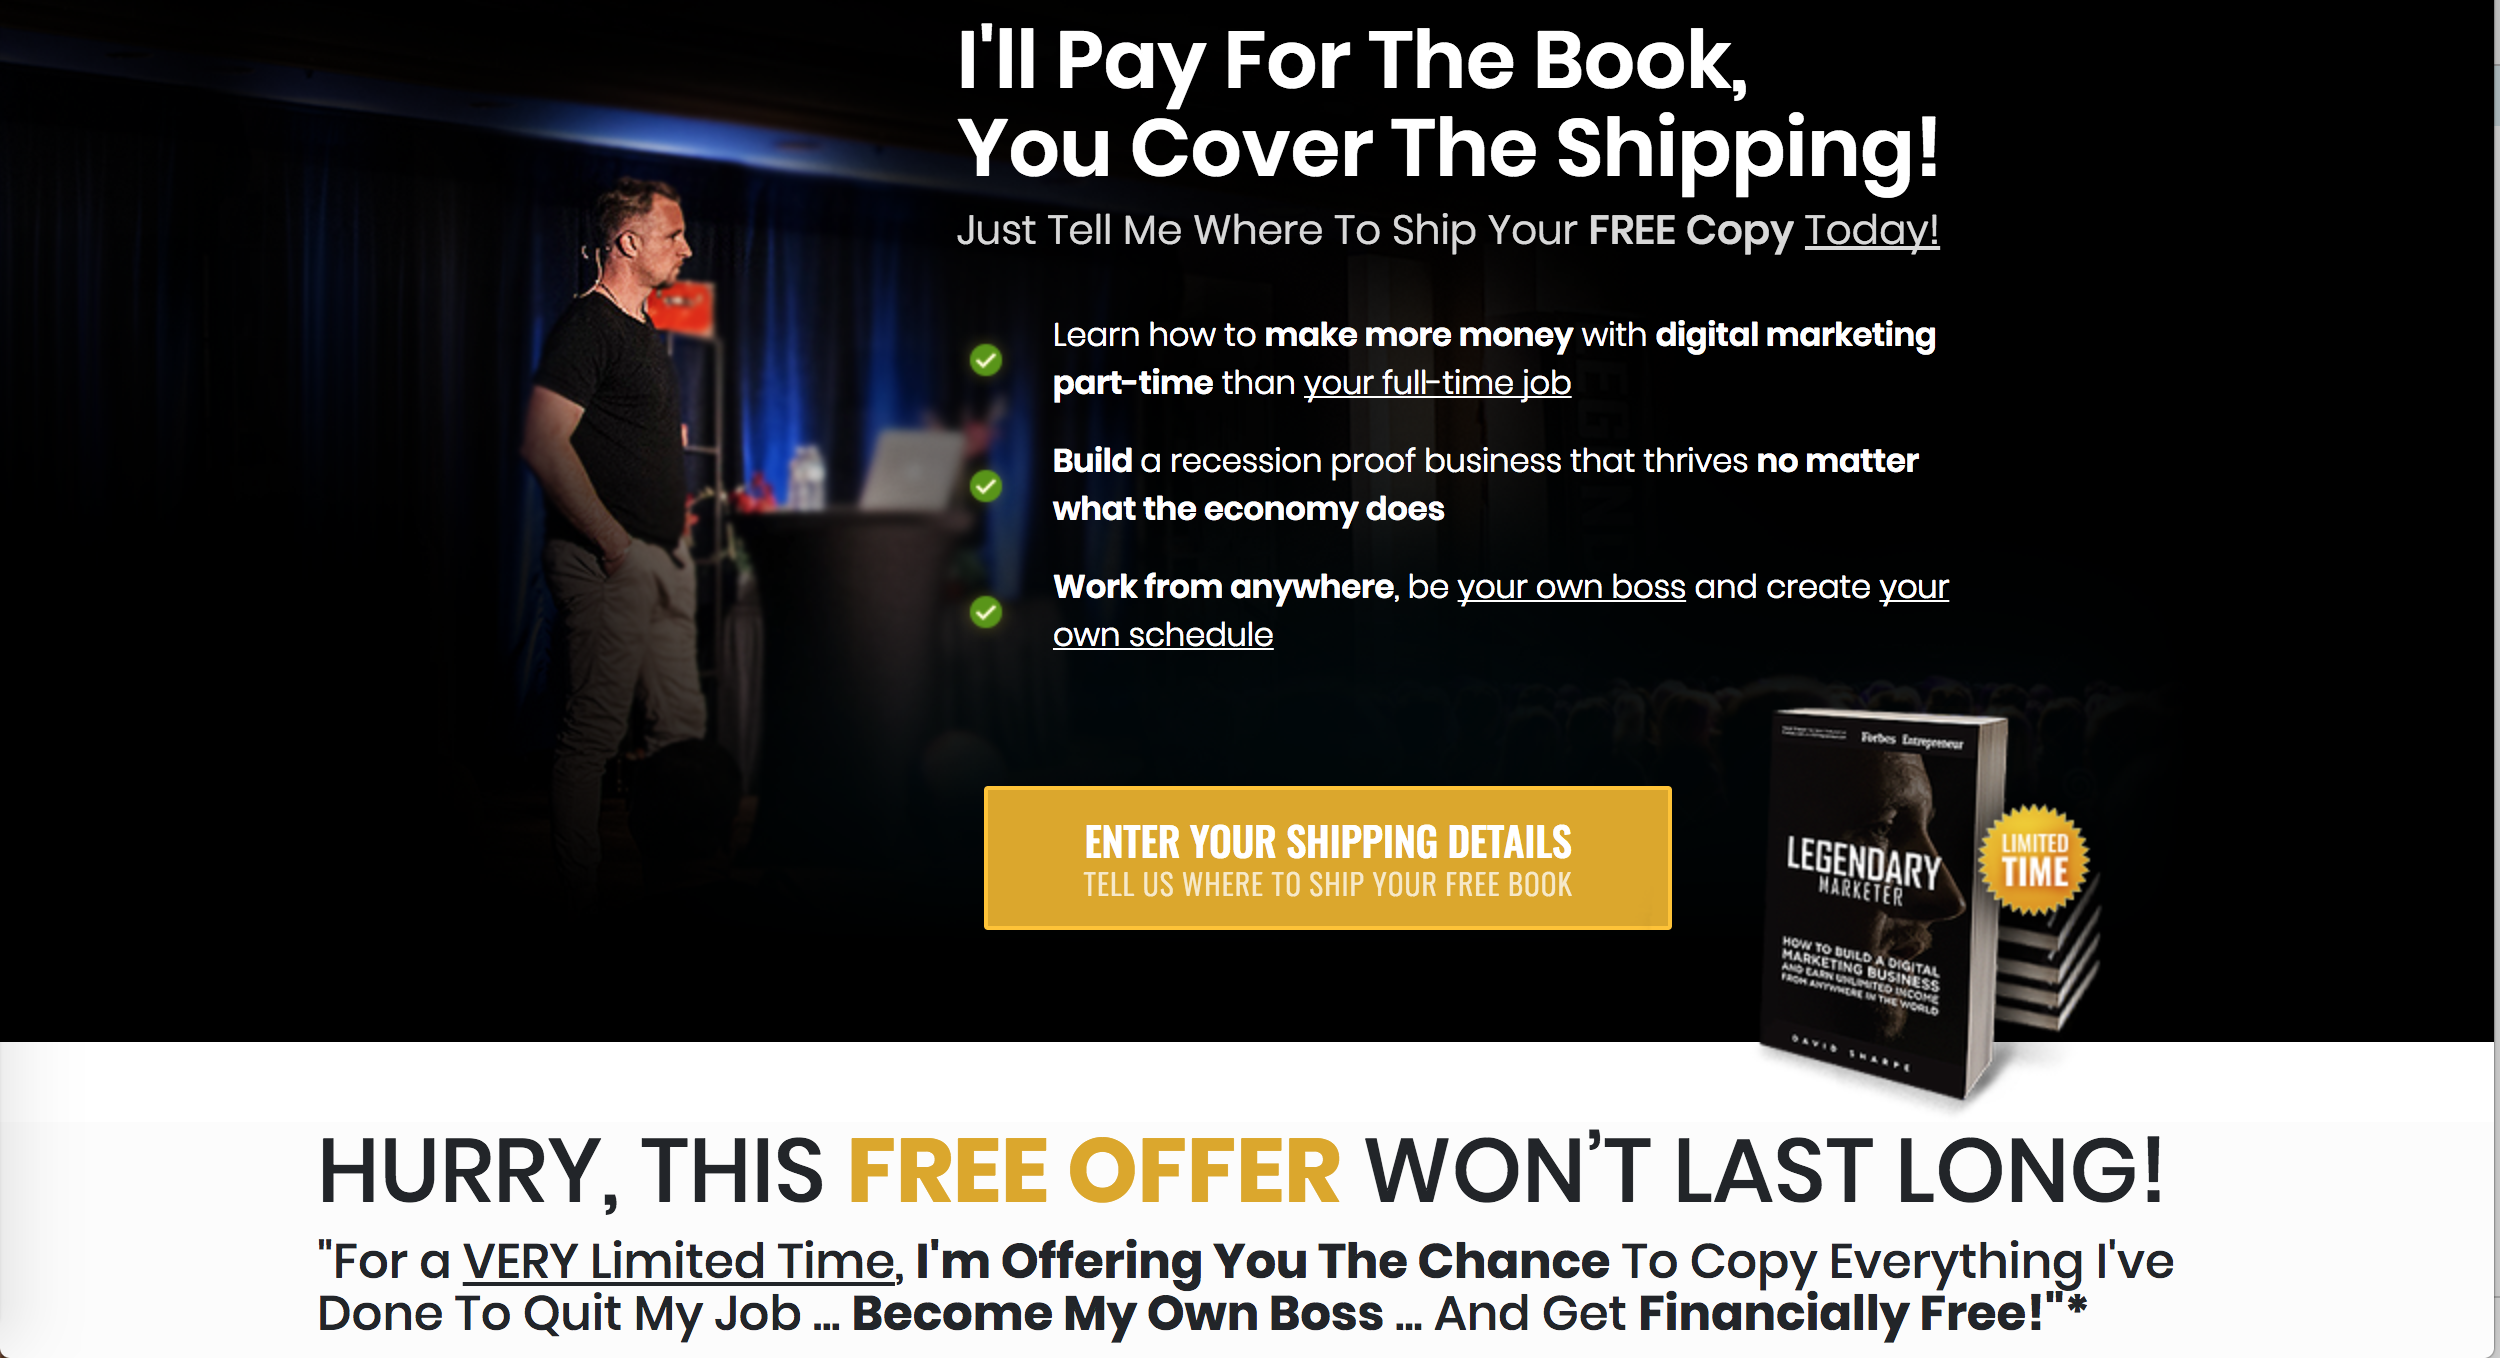 Buy Legendary Marketer Online Coupon 10 Off